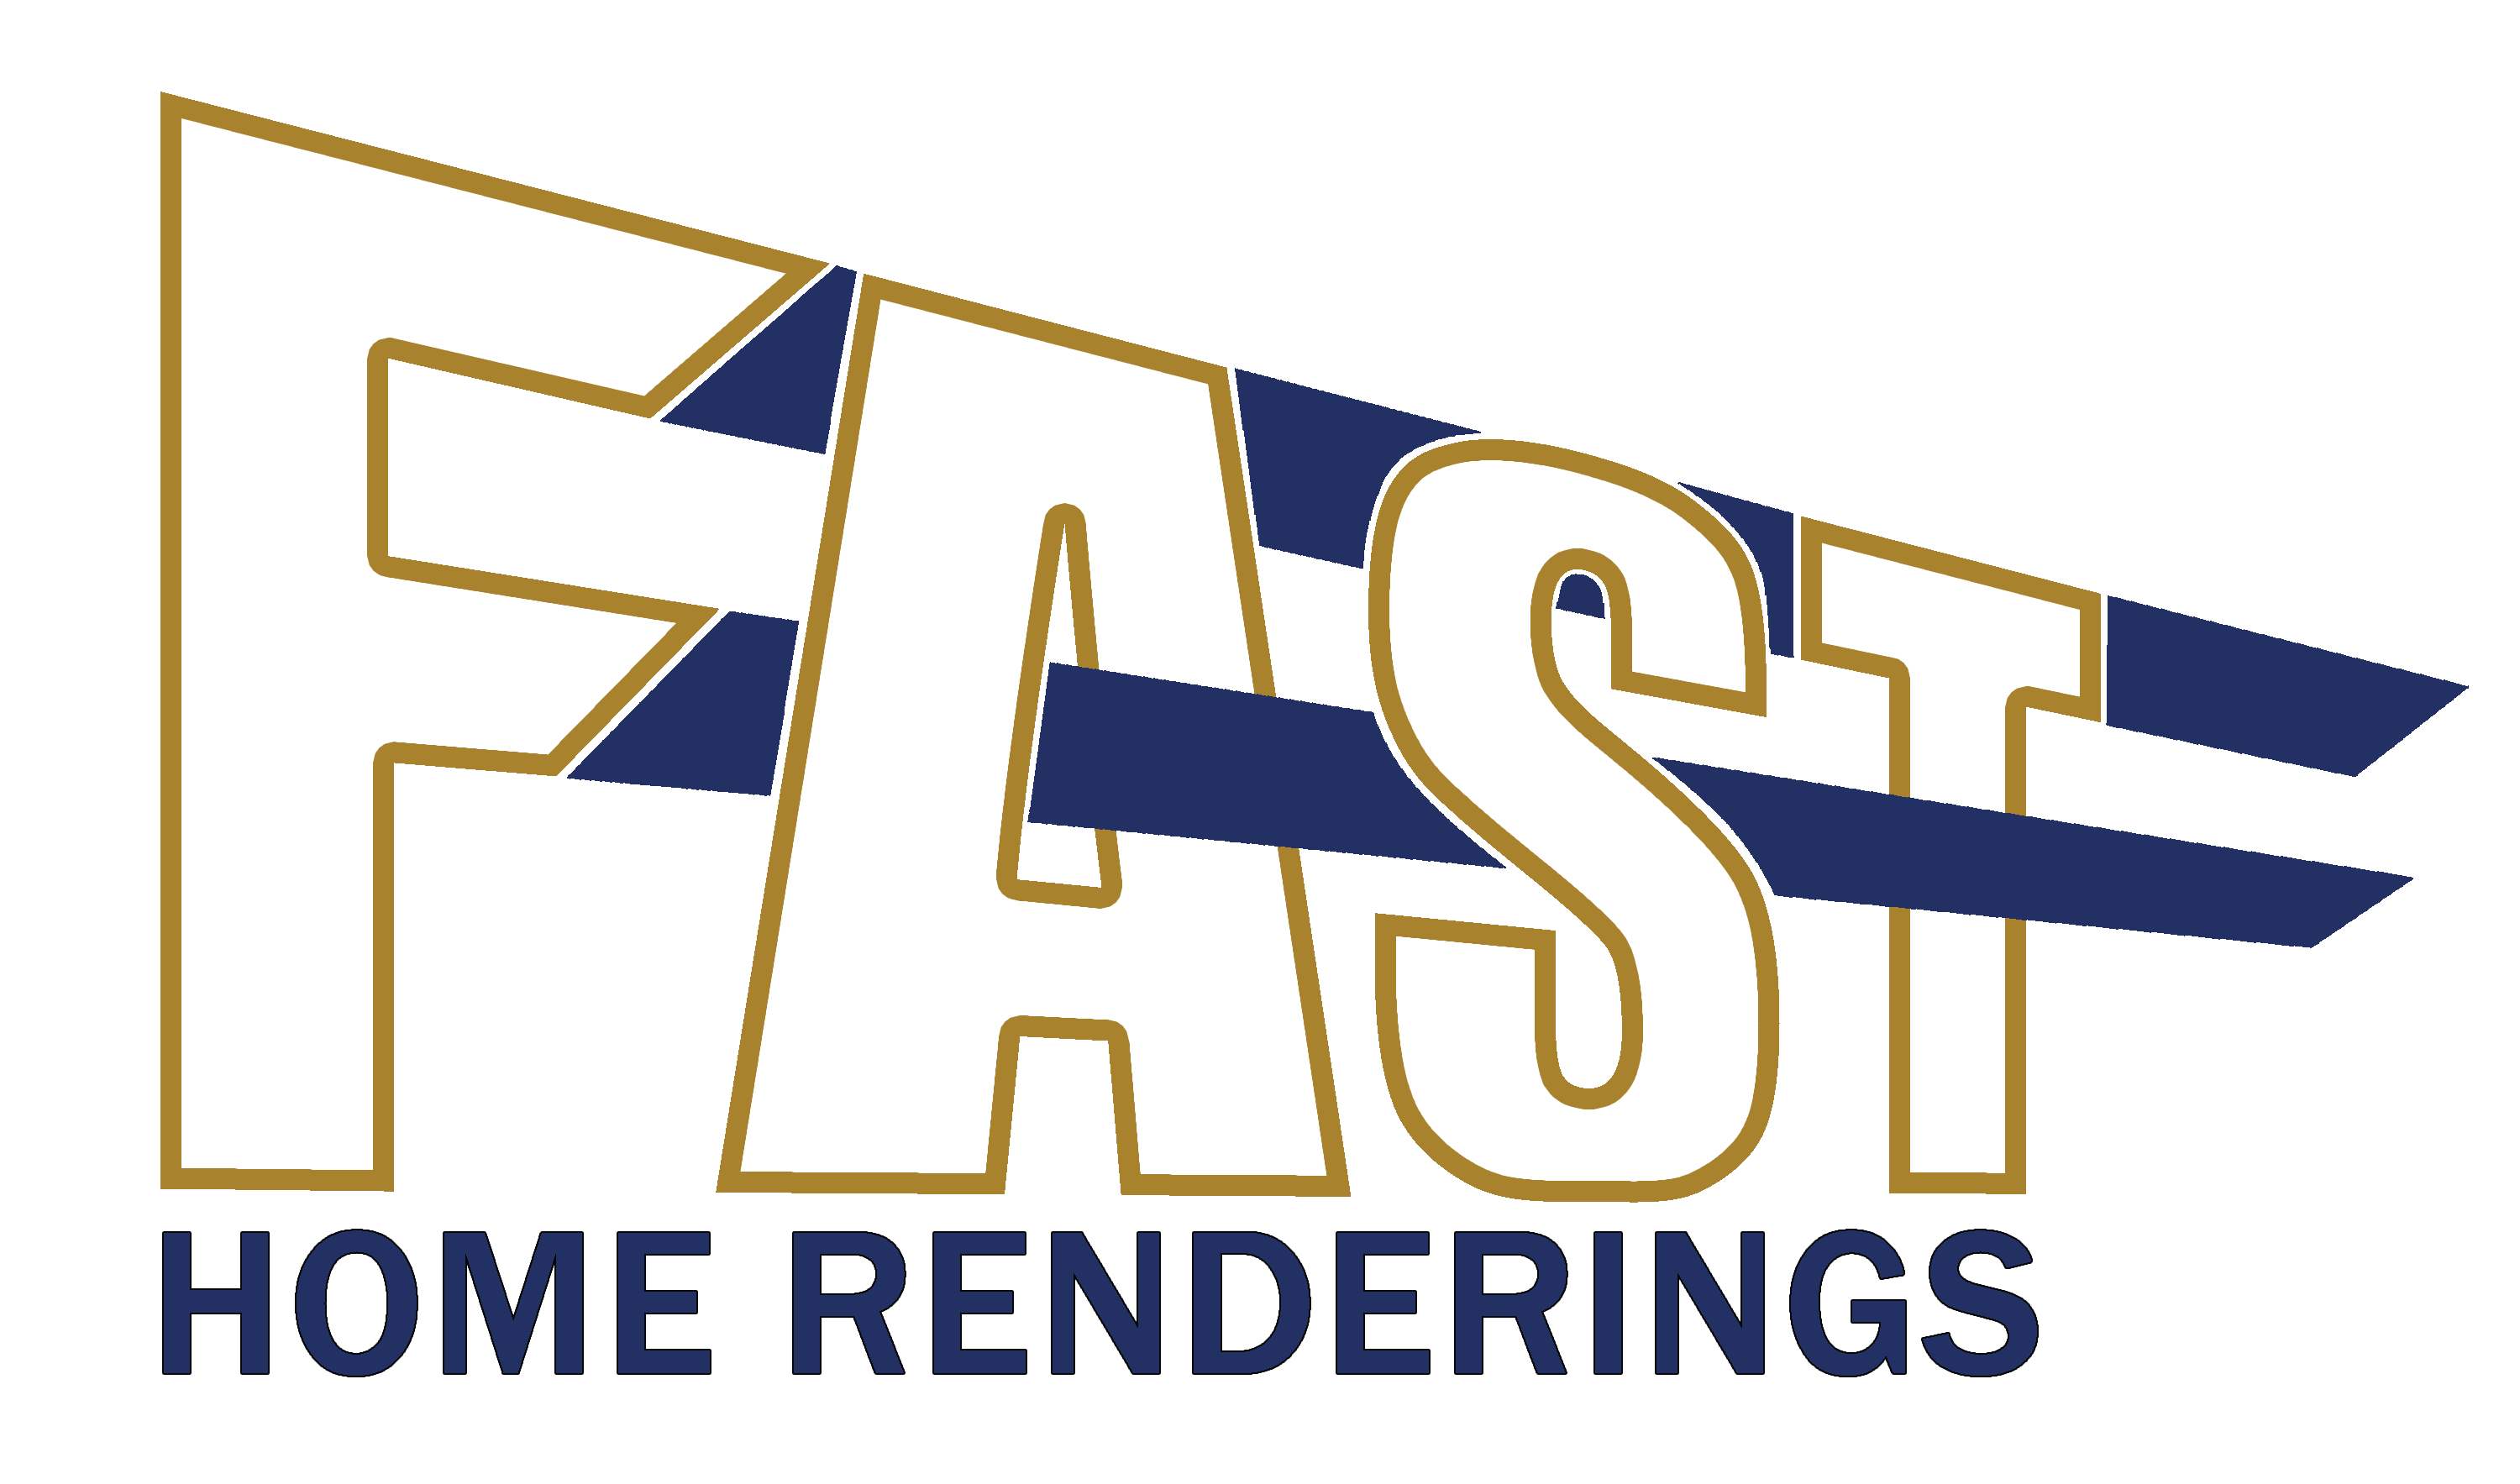 Fast Home Renderings